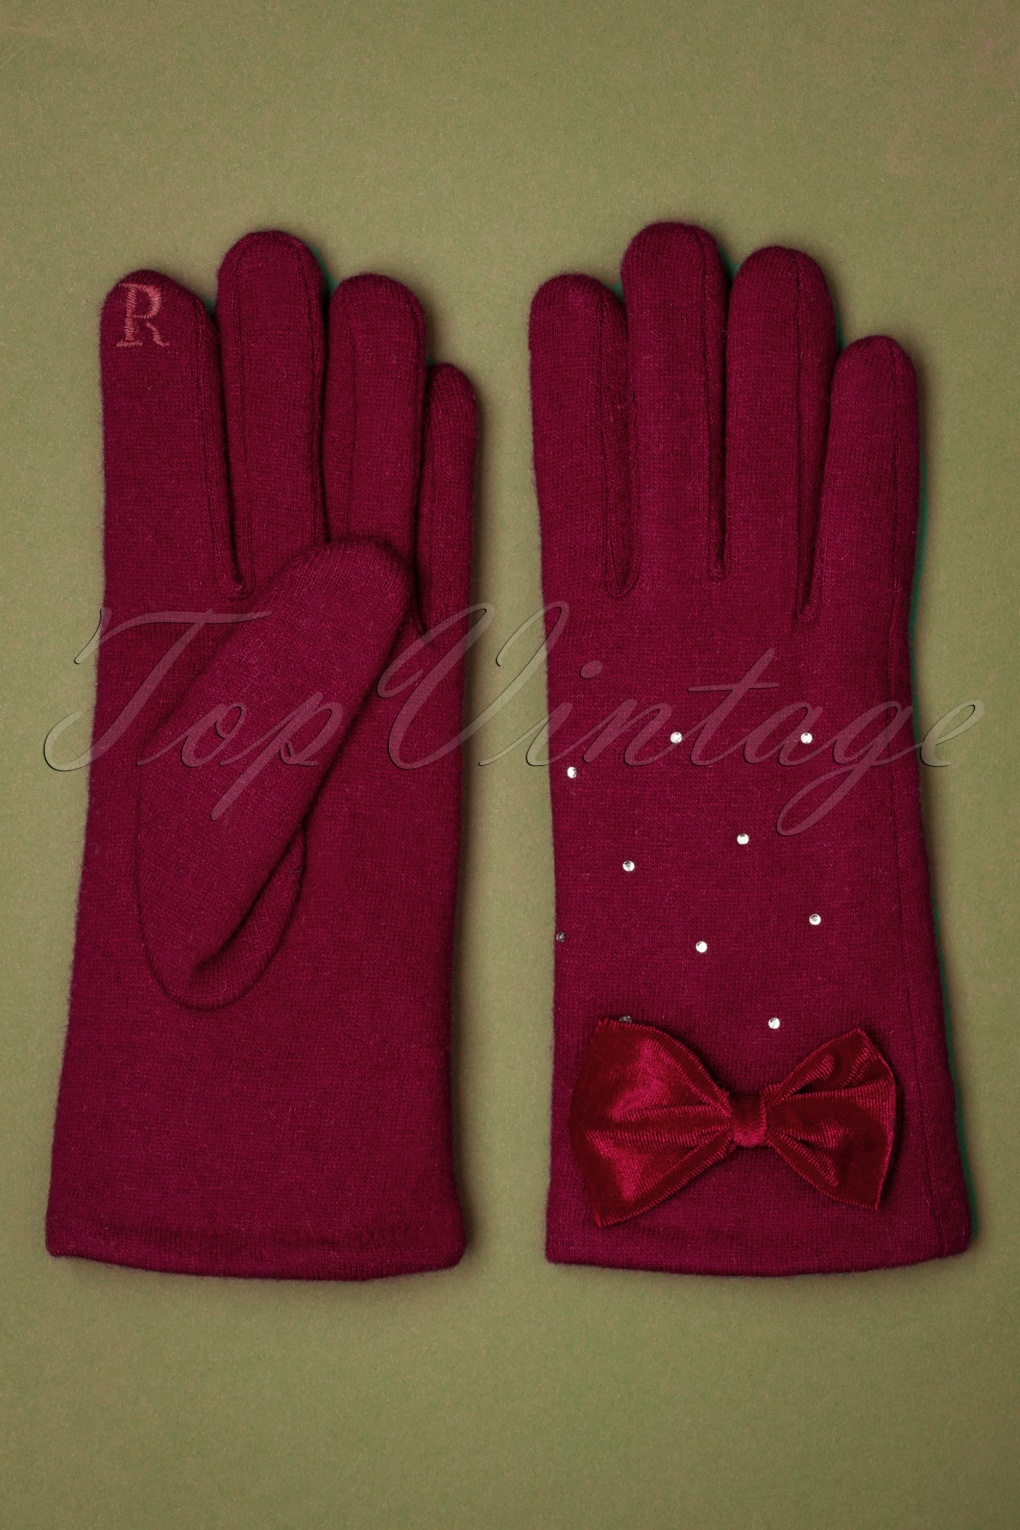 Vintage Style Gloves- Long, Wrist, Evening, Day, Leather, Lace 50s Myla Sparkly Wool Gloves in Red £22.59 AT vintagedancer.com